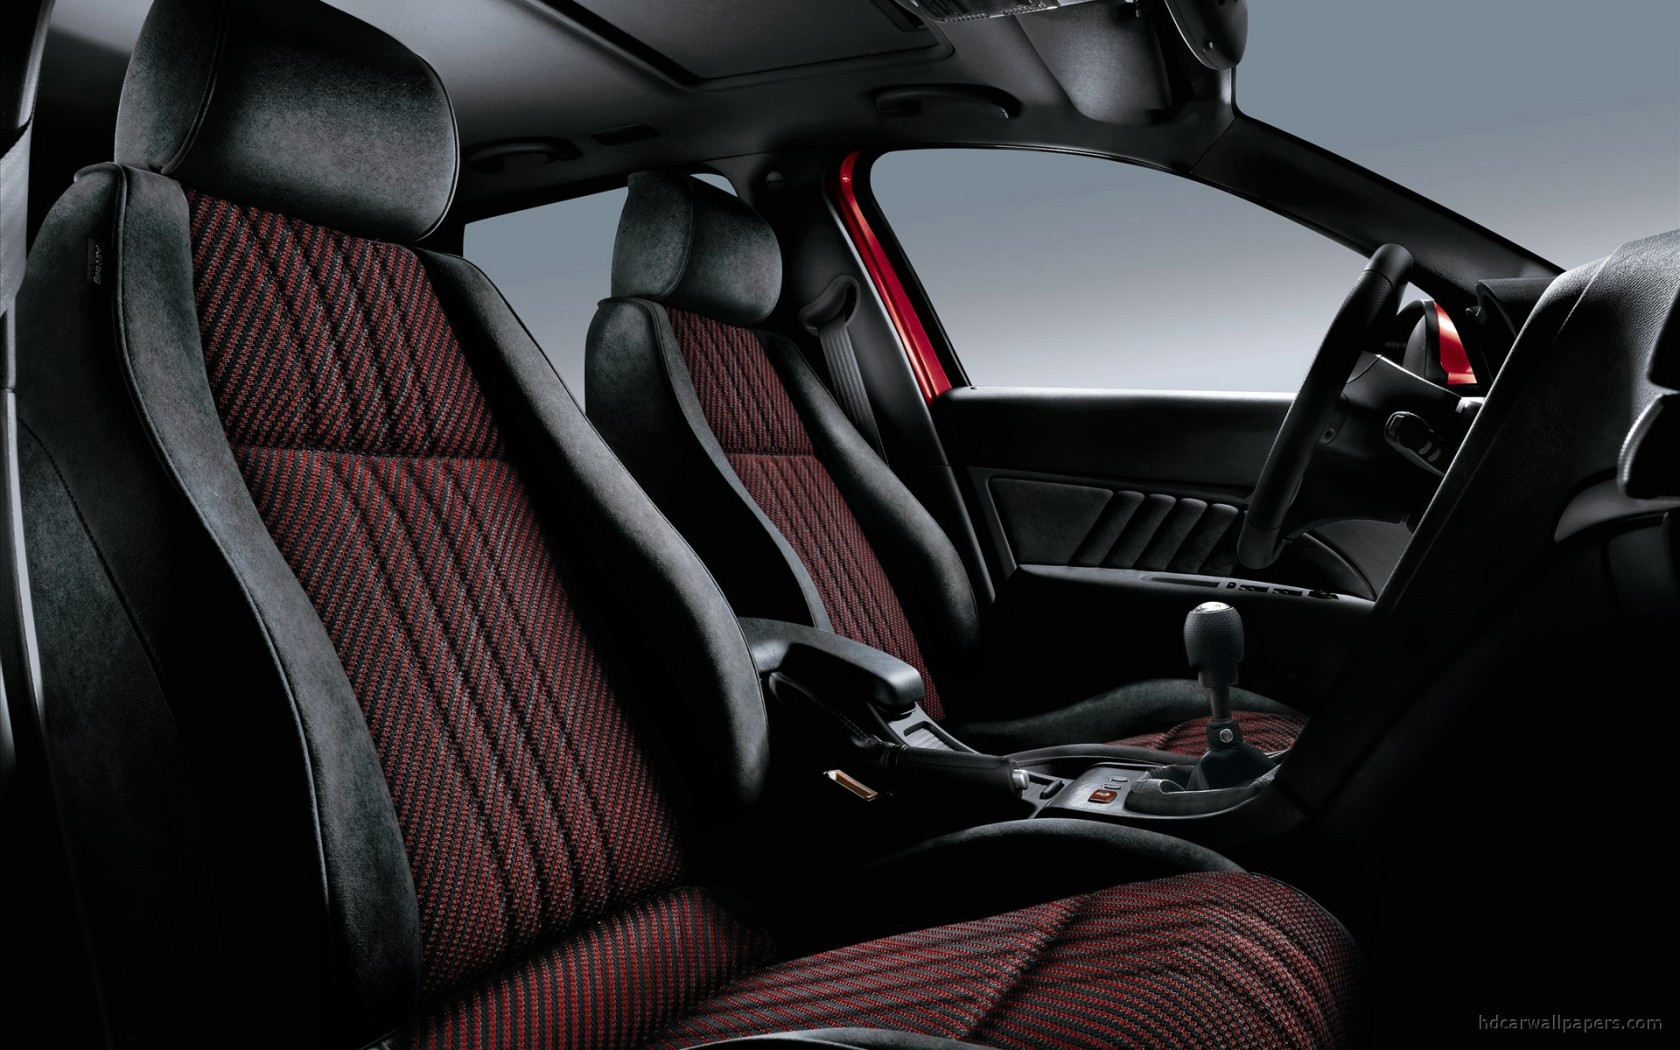 2009 alfa romeo 159 interior wallpaper hd car wallpapers for Alfa romeo 159 interieur